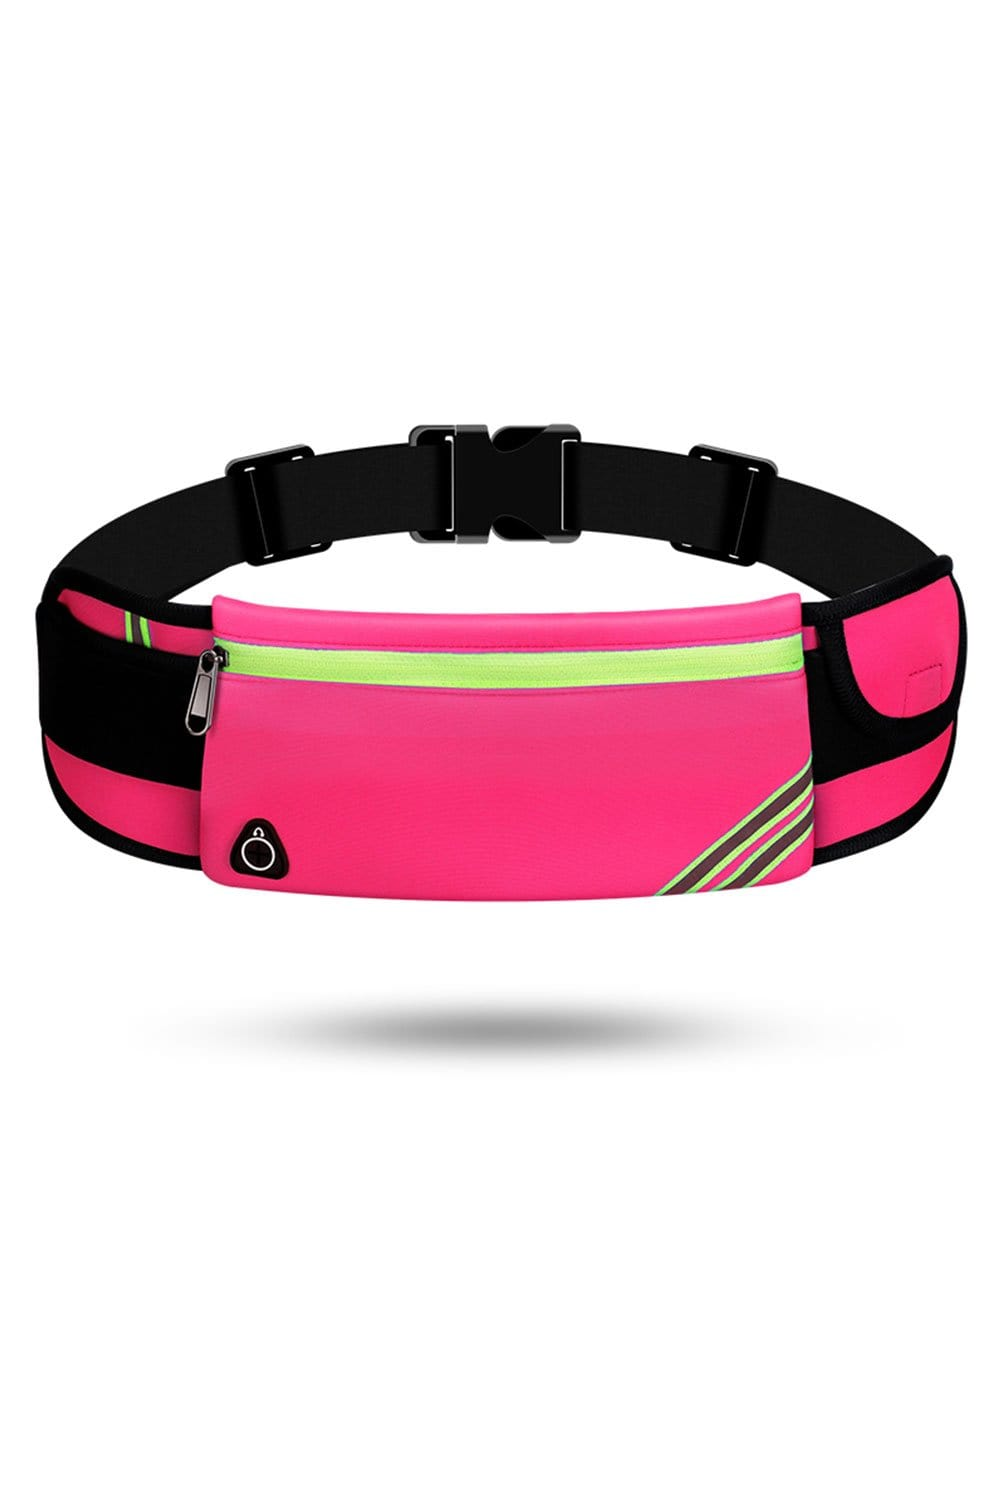 Running Waist Pack Bag, Workout Fanny Pack, Bounce Free Jogging Pocket, Travelling Money Cell Phone Holder Waist Bag Rose Red / Single Zipper MIER